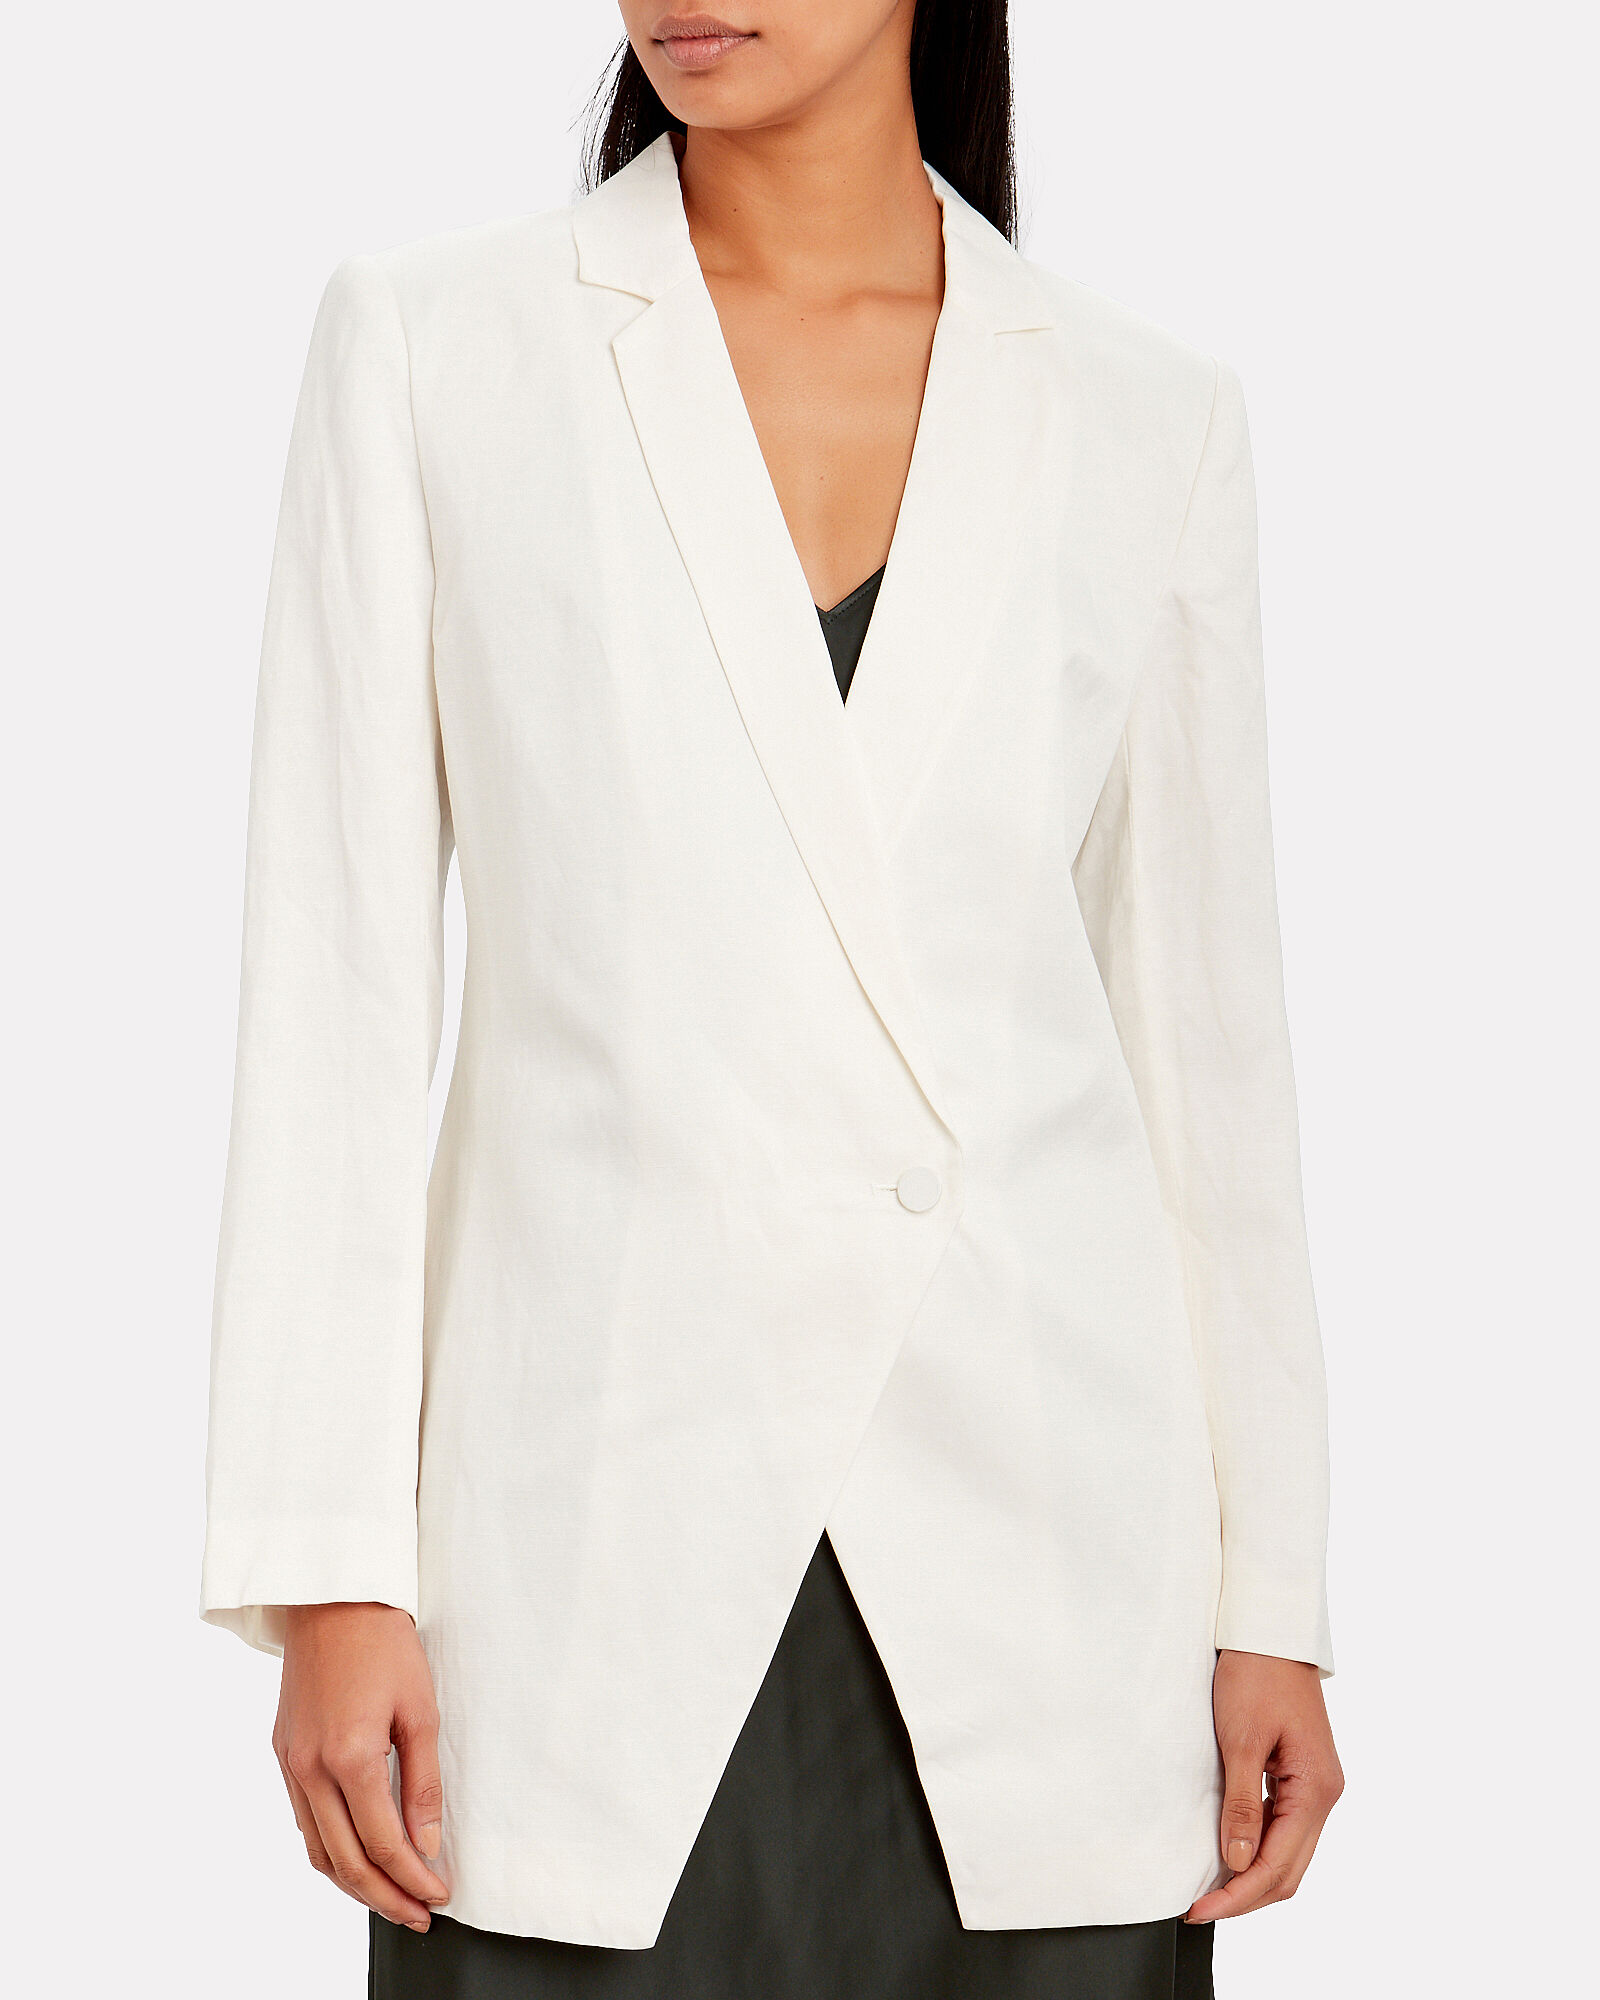 Laney Oversized Linen-Blend Blazer, WHITE, hi-res